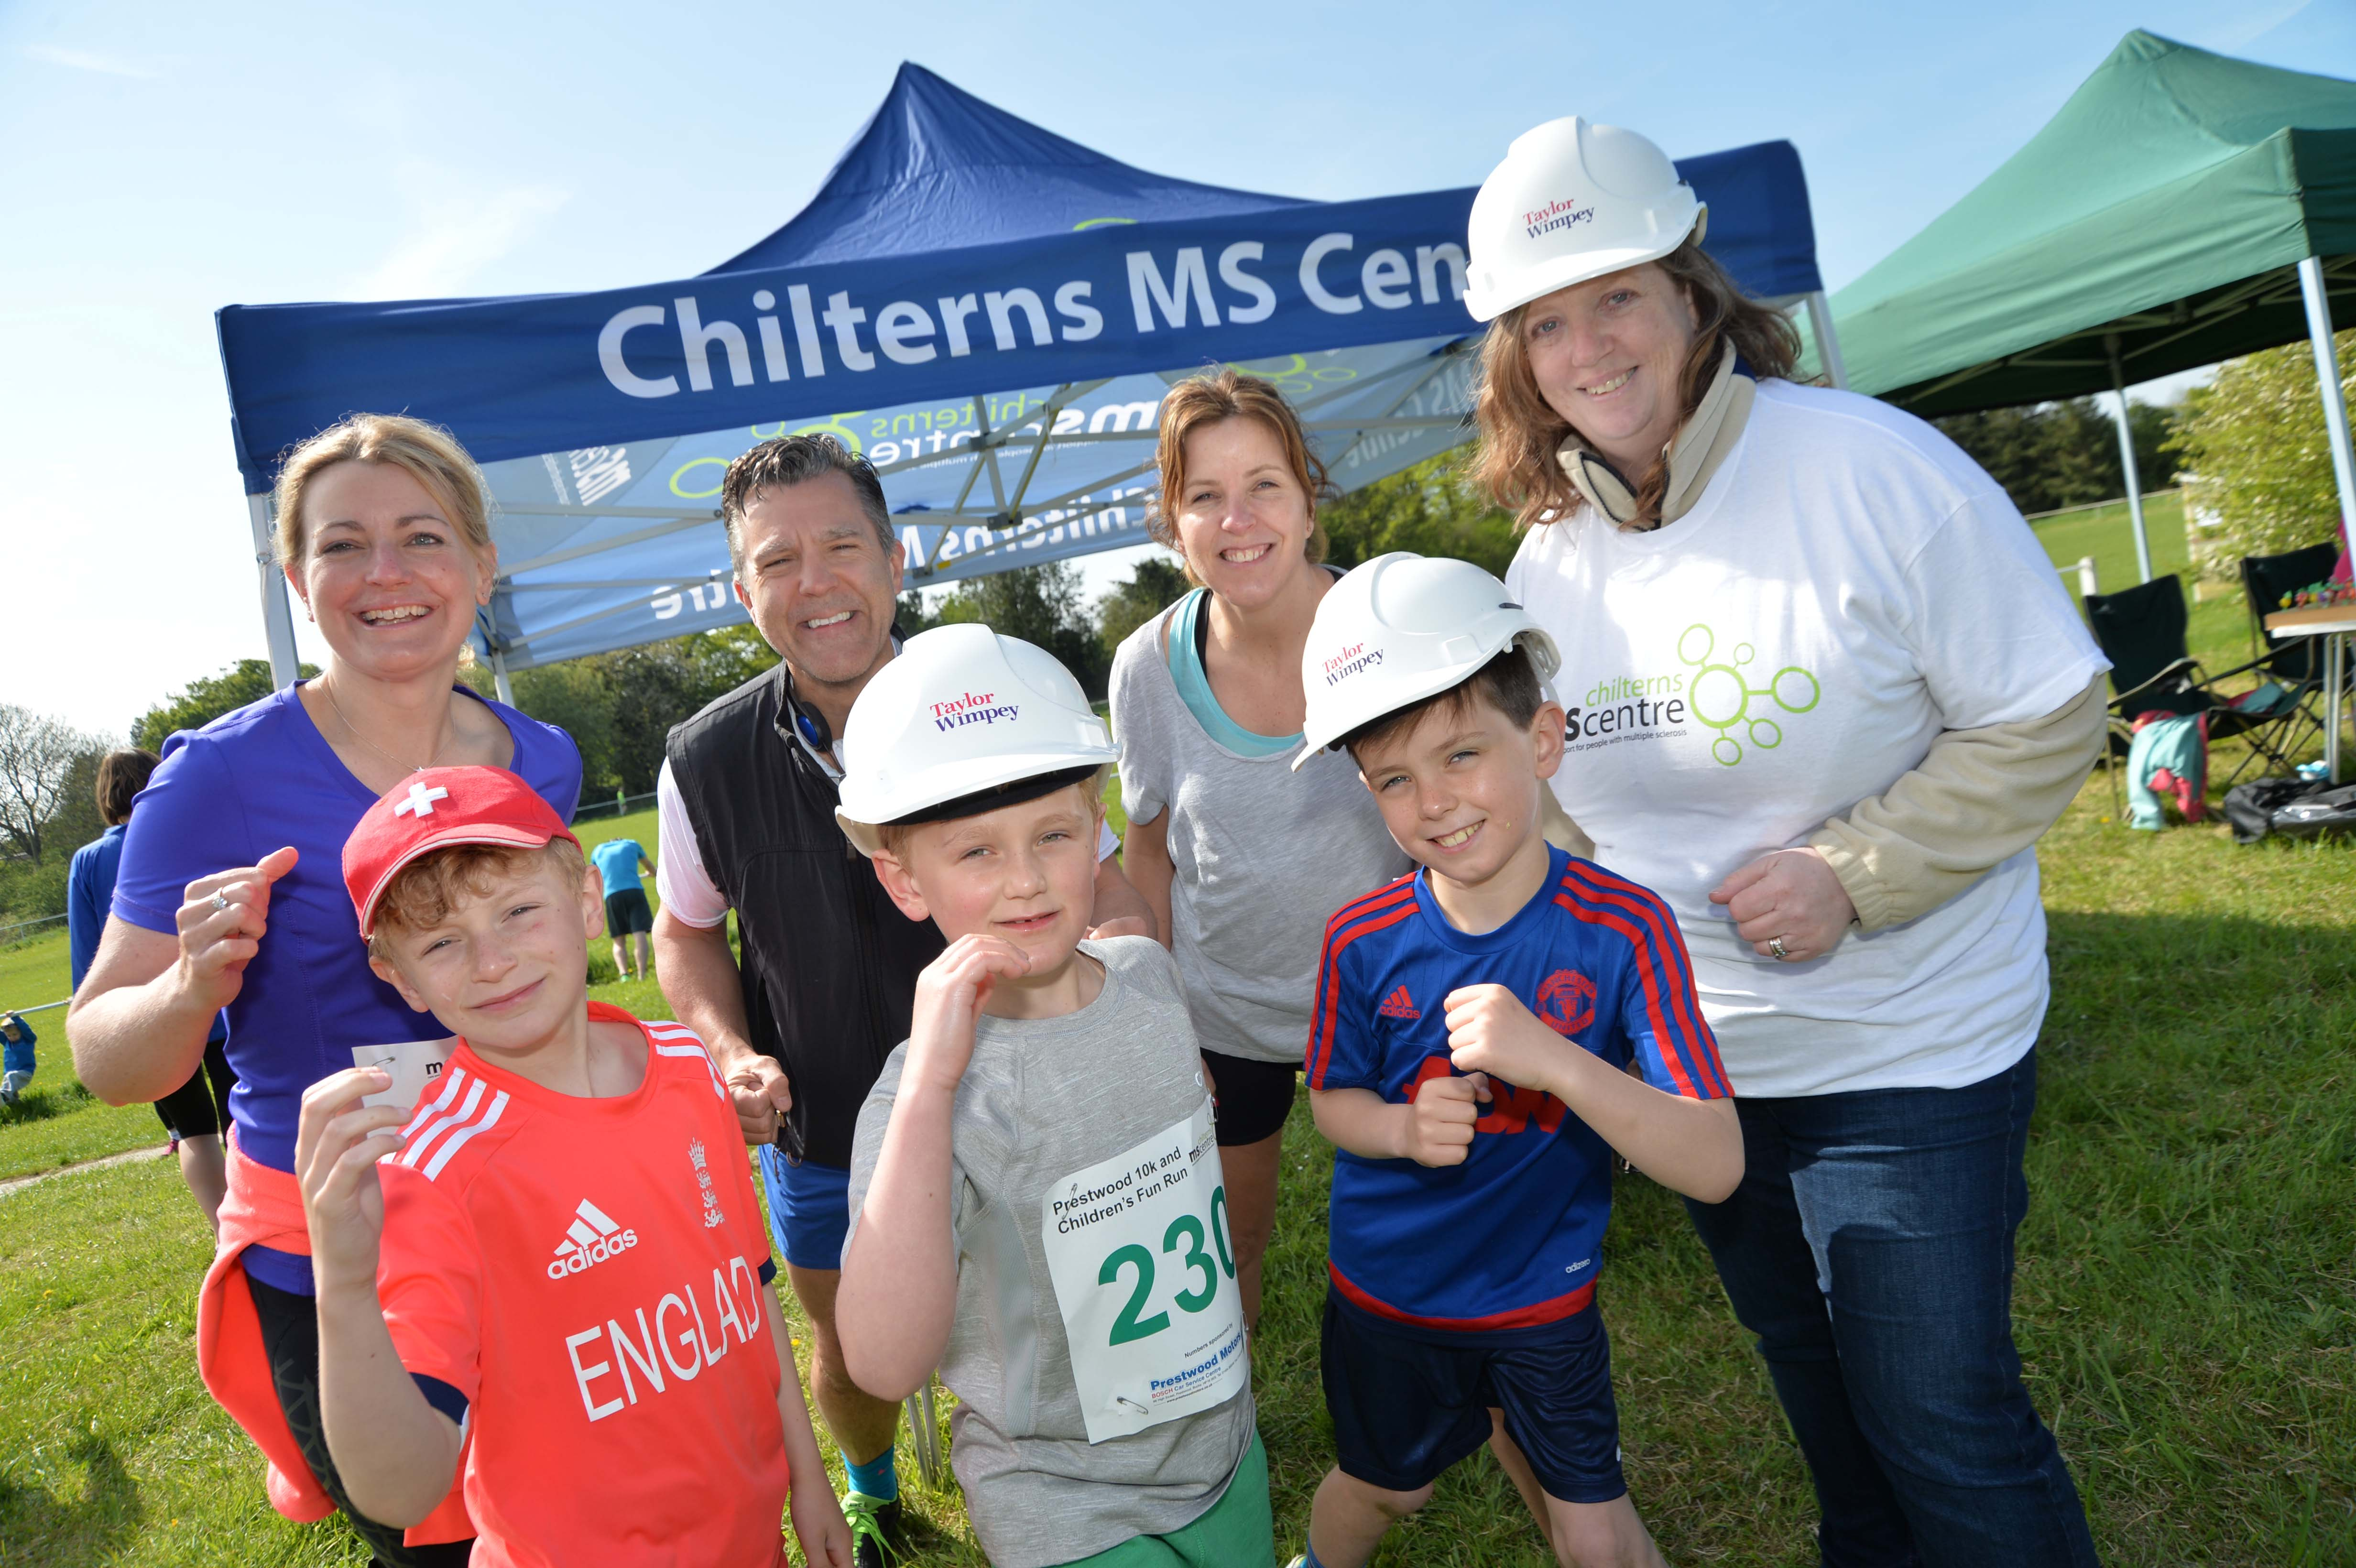 Image 1 Taylor Wimpey - Chilterns Prestwood 10k